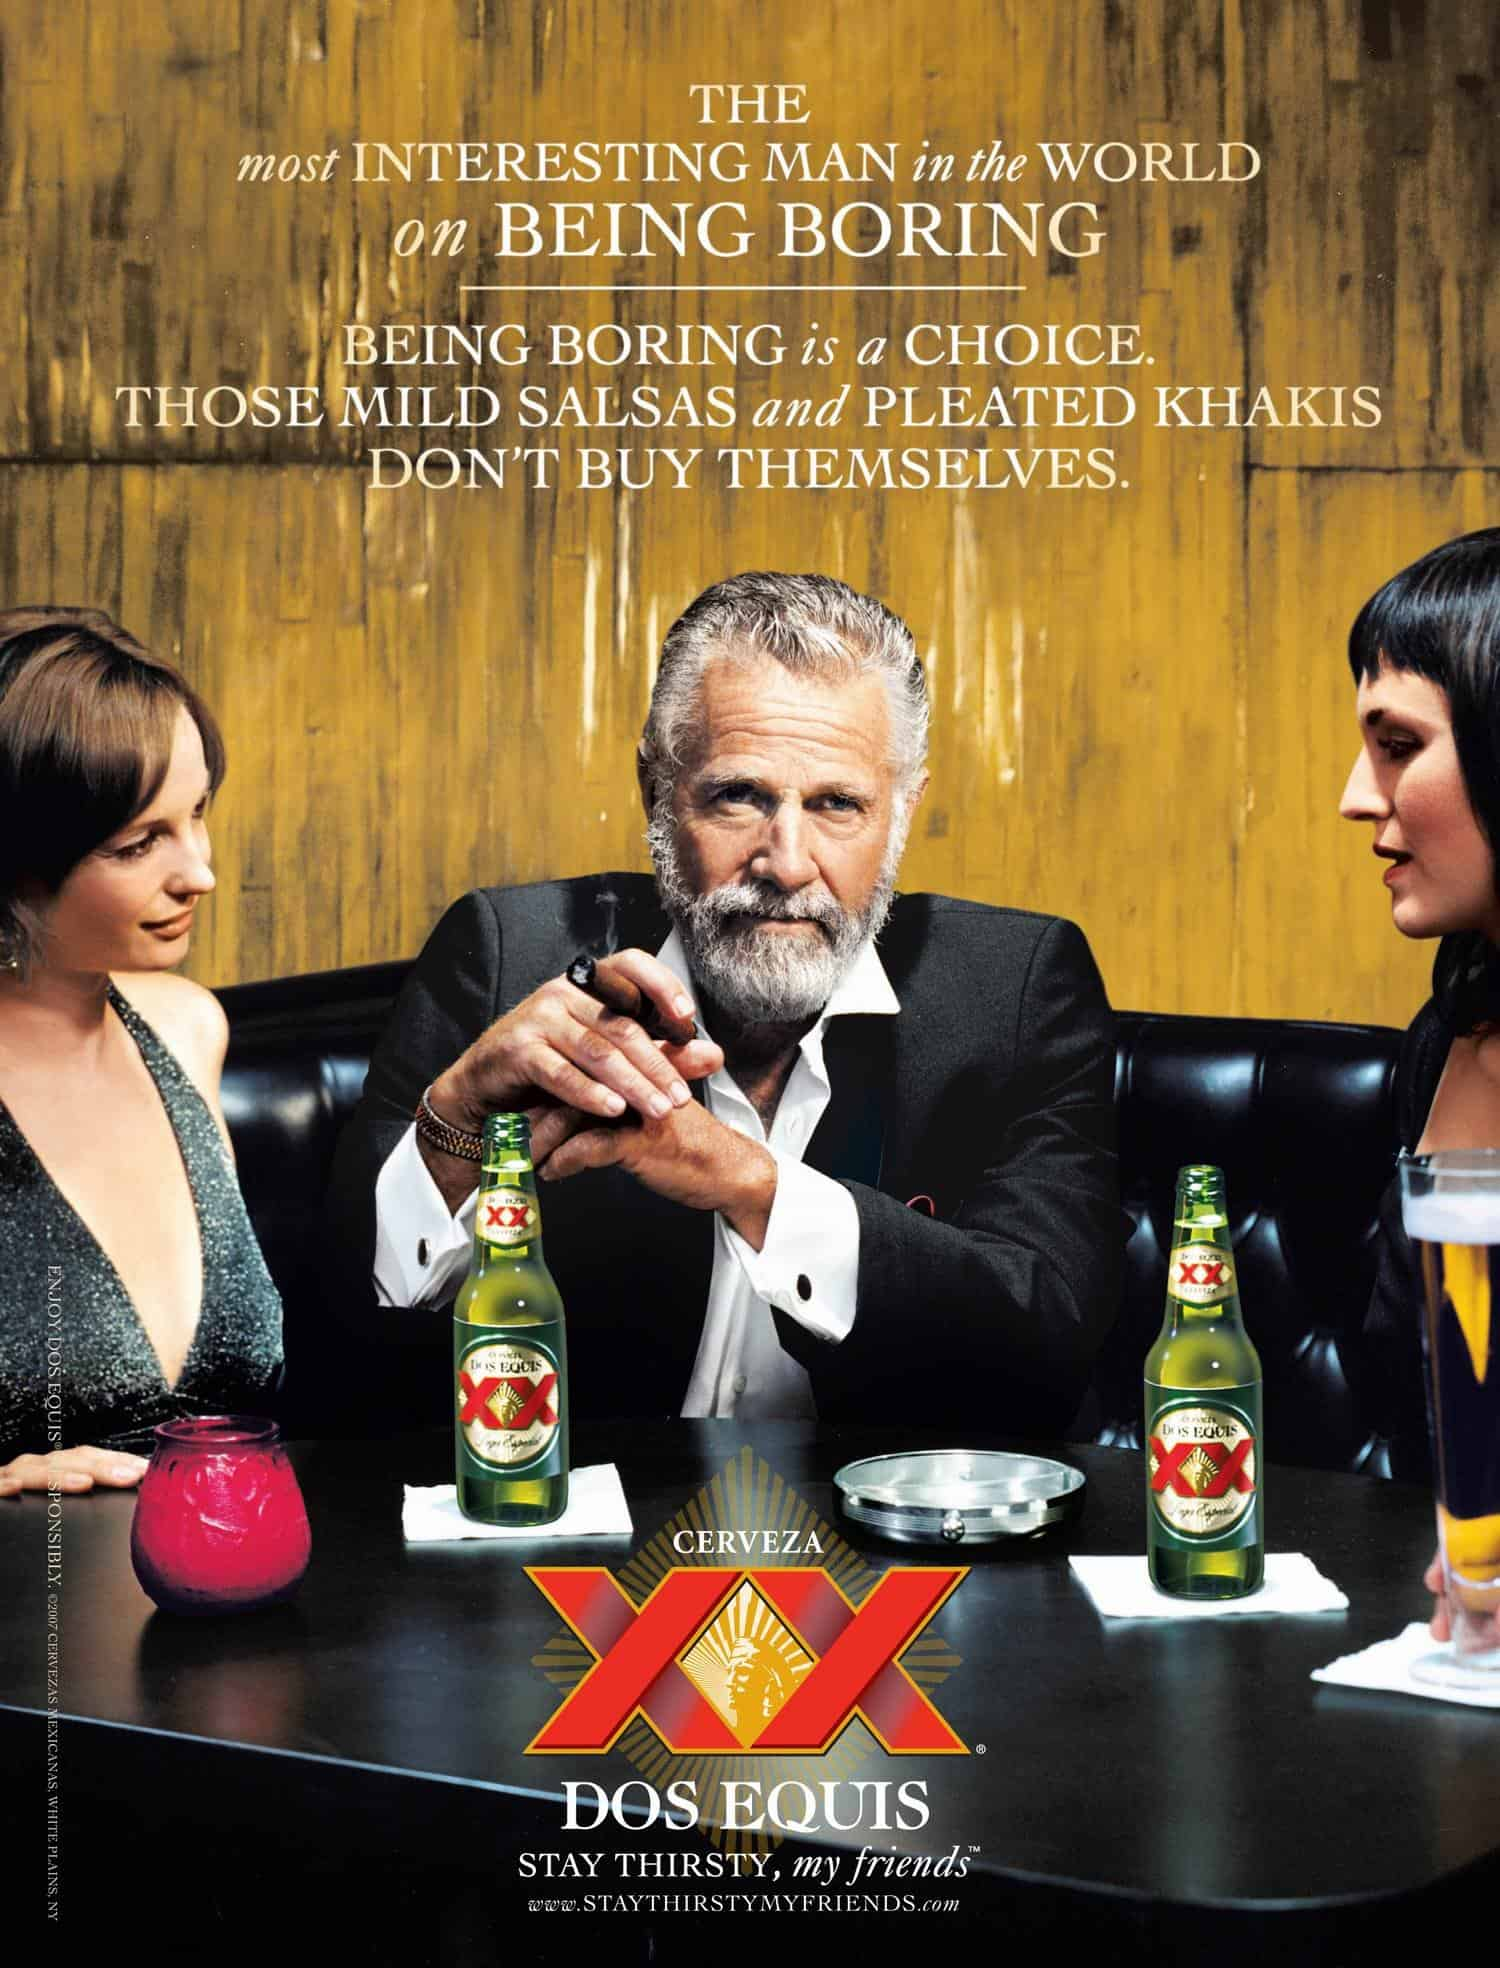 dos-equis-beer-being-boring-original-59921